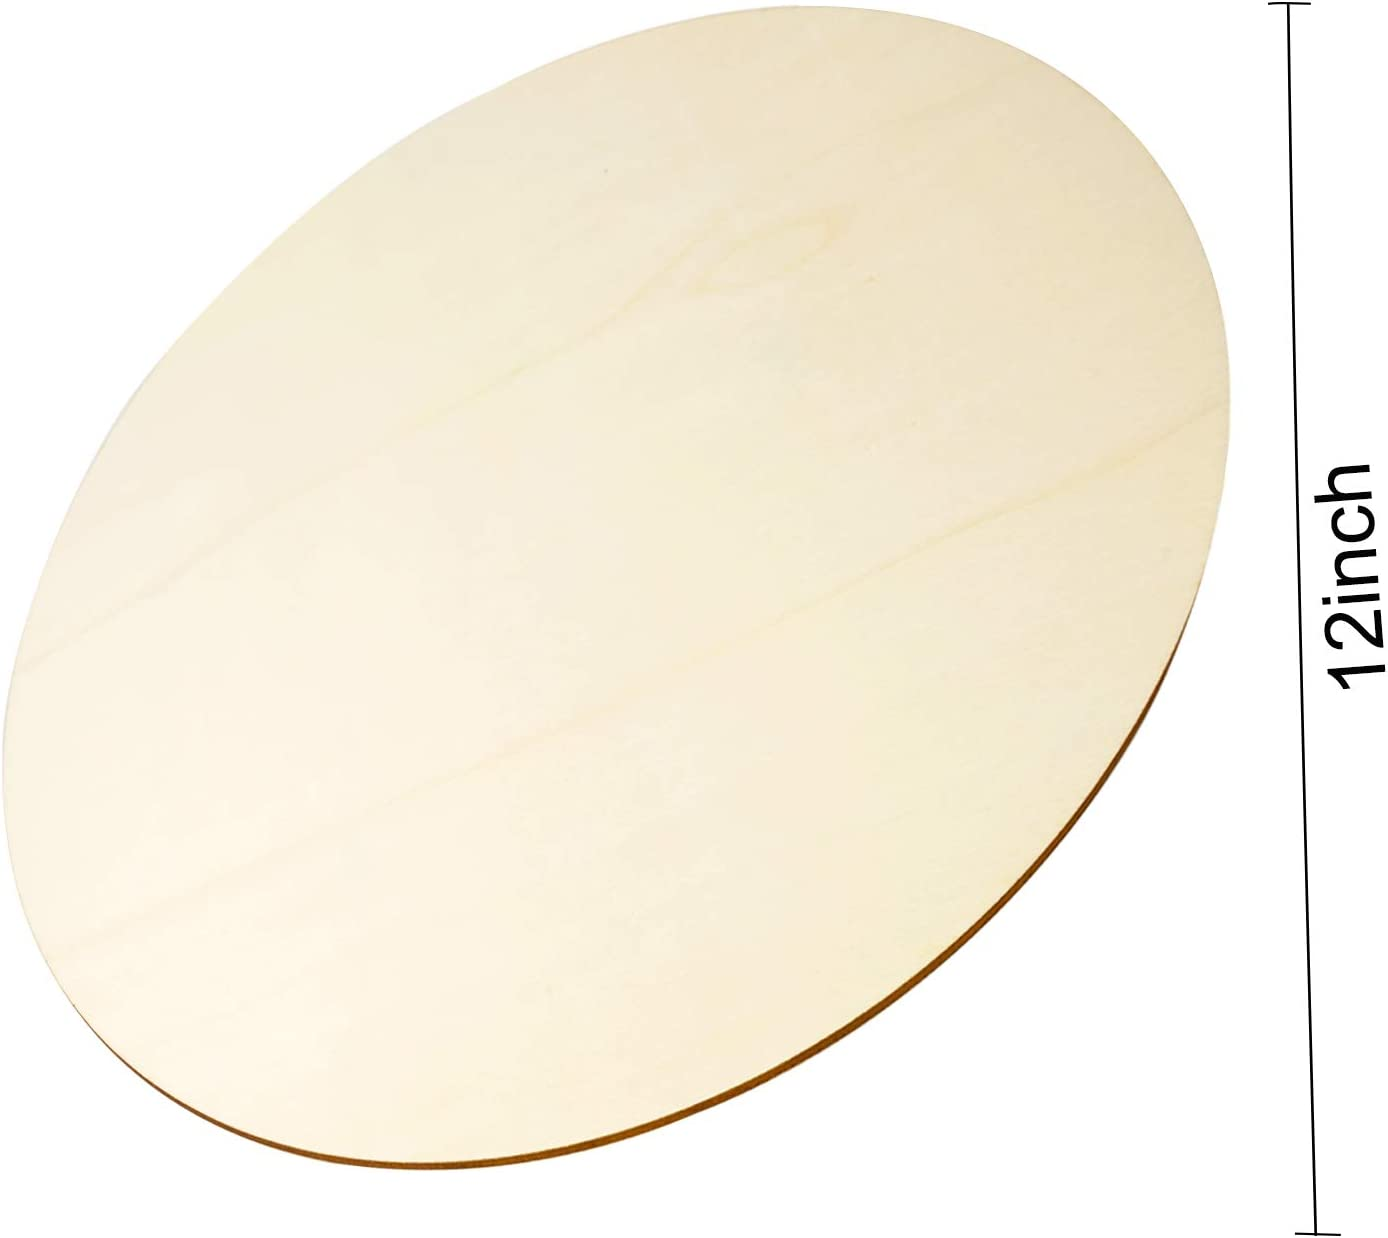 Wood Slices for Painting Party Holiday Decor Unfinished Blank Wooden Circle 3 Pieces Wood Circles for Crafts Home